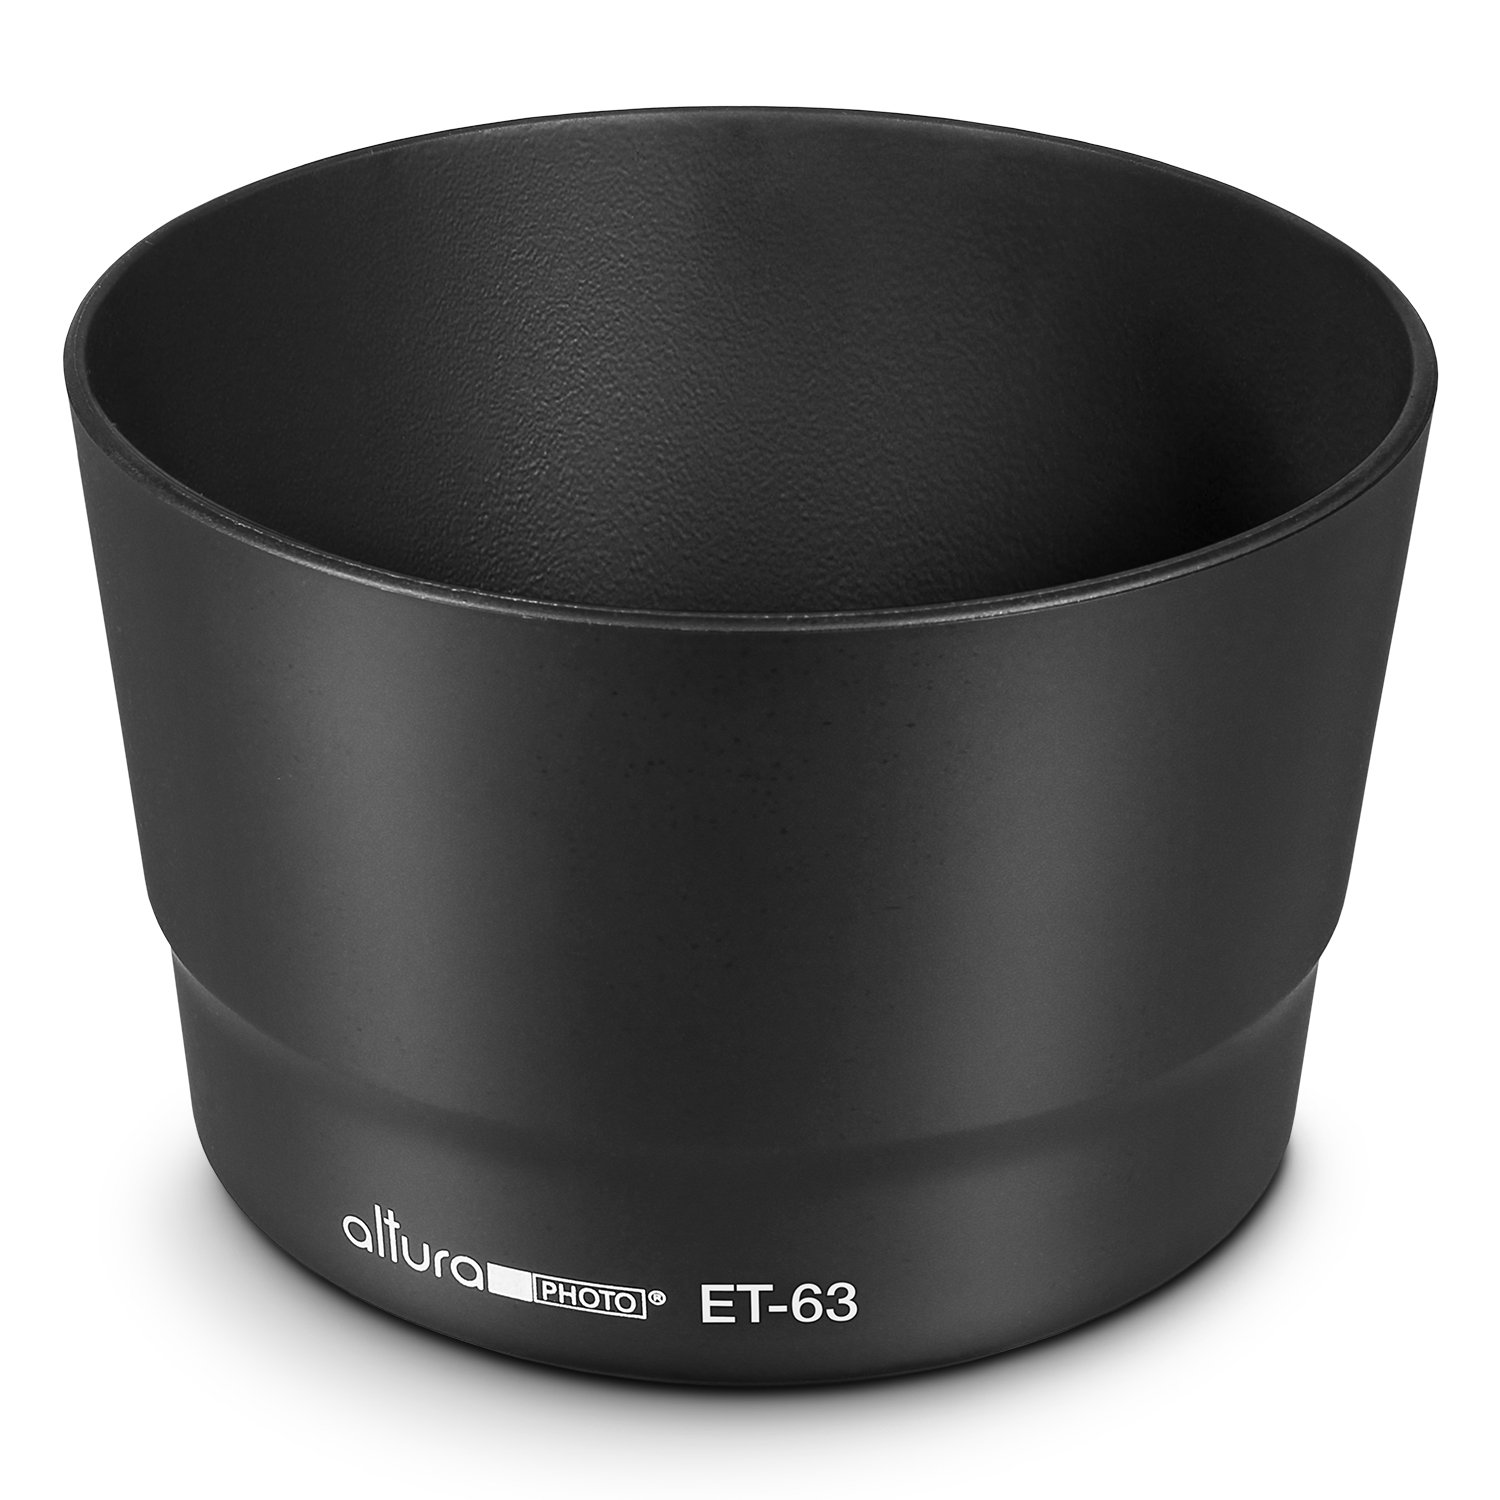 (Canon ET-63 Replacement) Altura Photo Lens Hood for Canon EF-S 55-250mm f/4-5.6 is STM Lens by Altura Photo